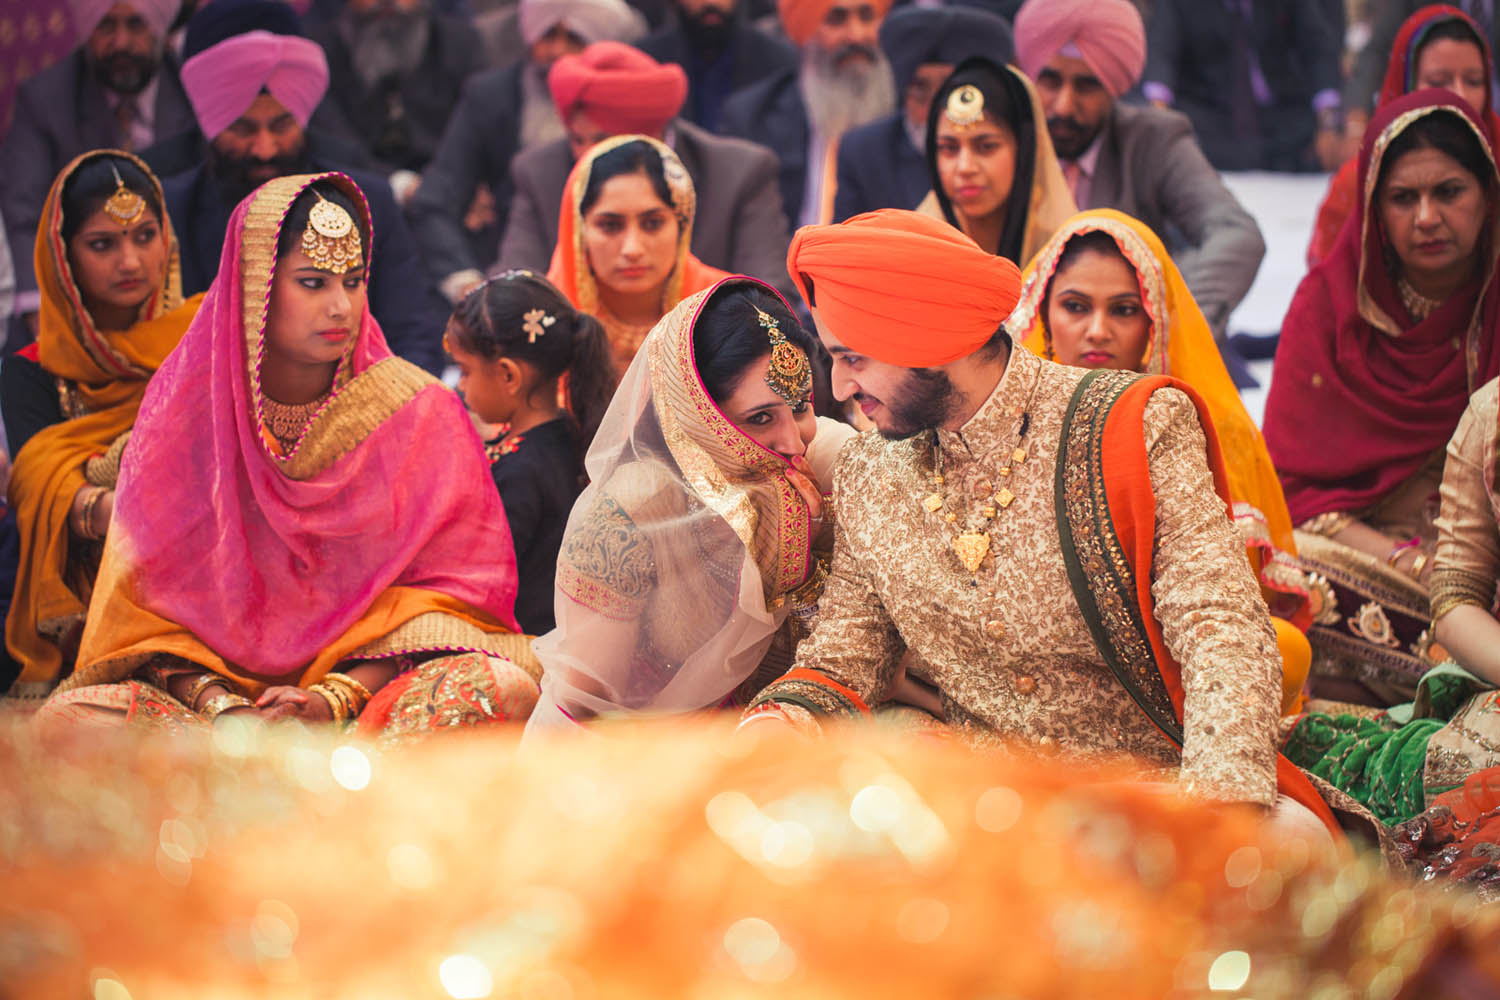 punjab_wedding43.jpg